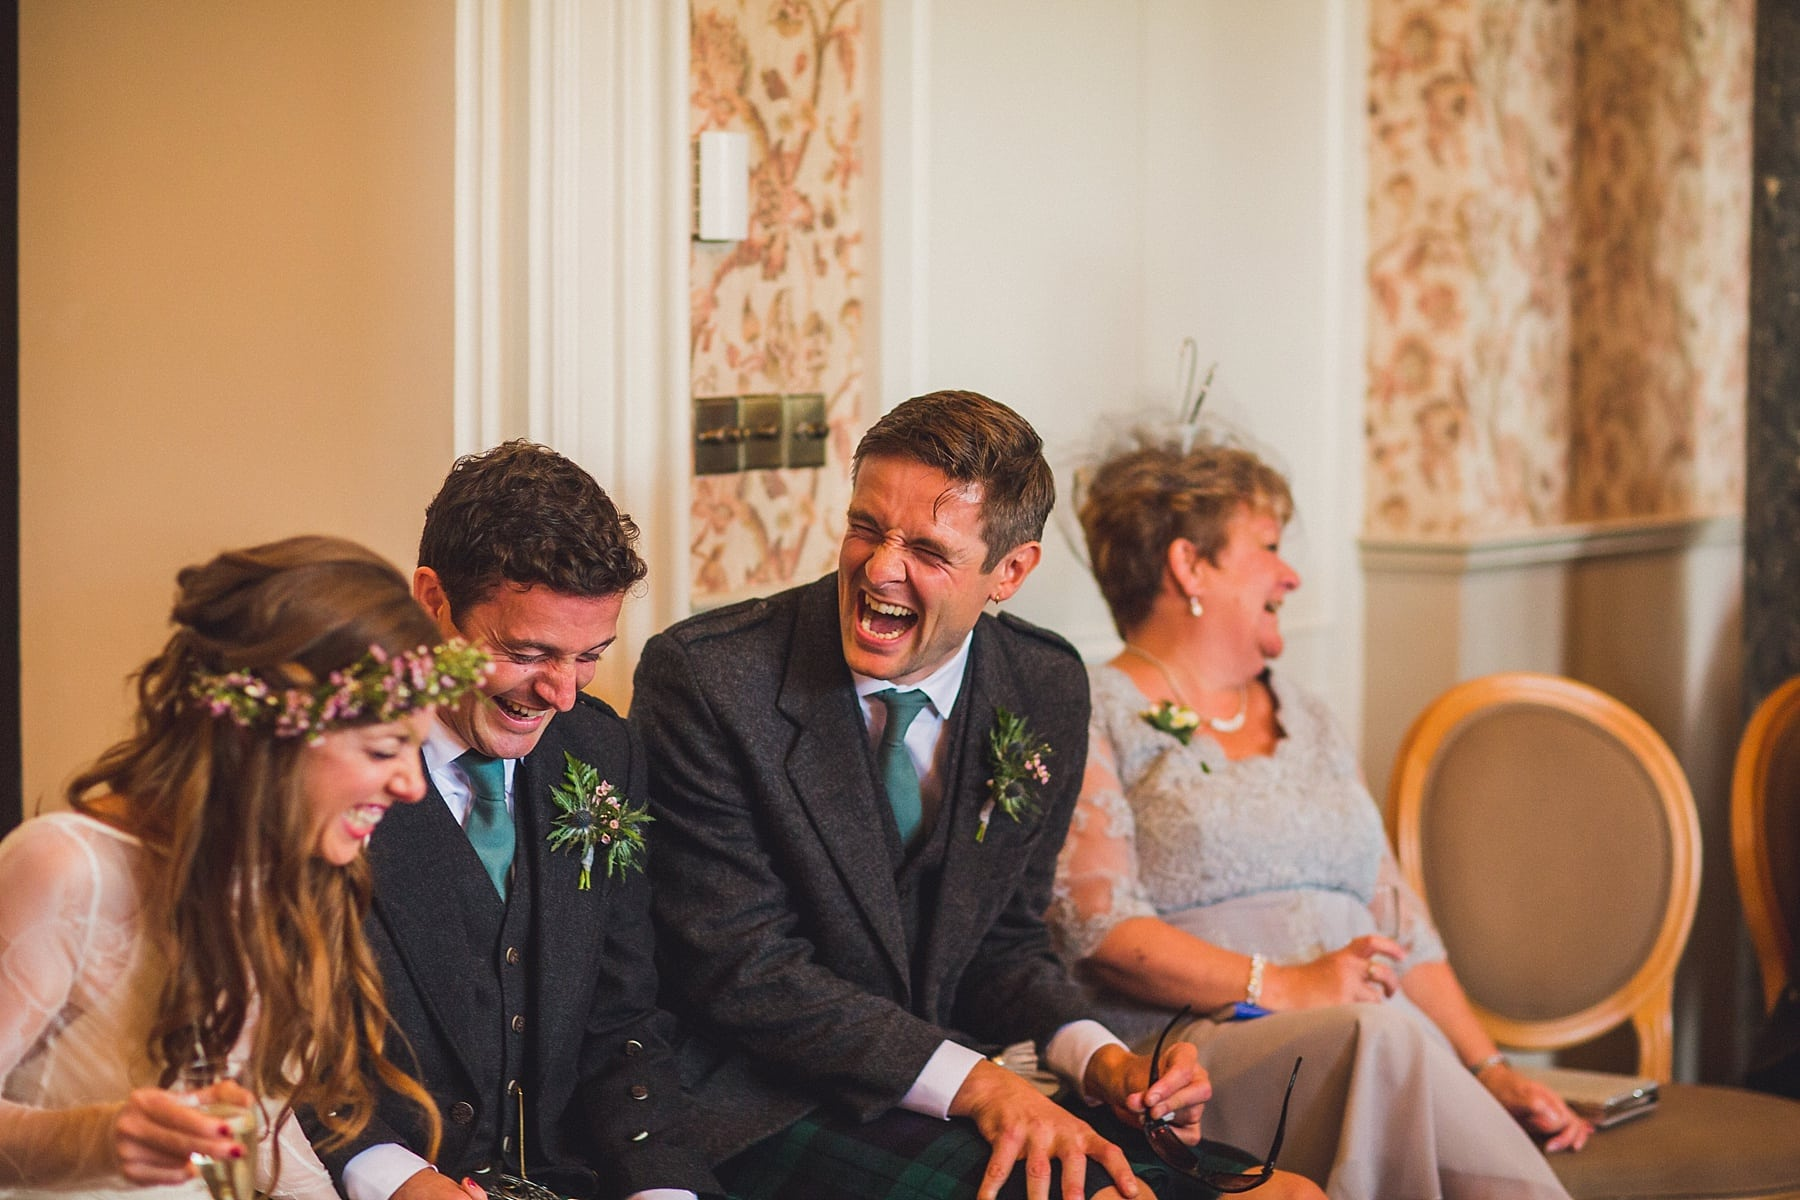 Markree Castle wedding,irish wedding photography,irish bride,scottish groom,